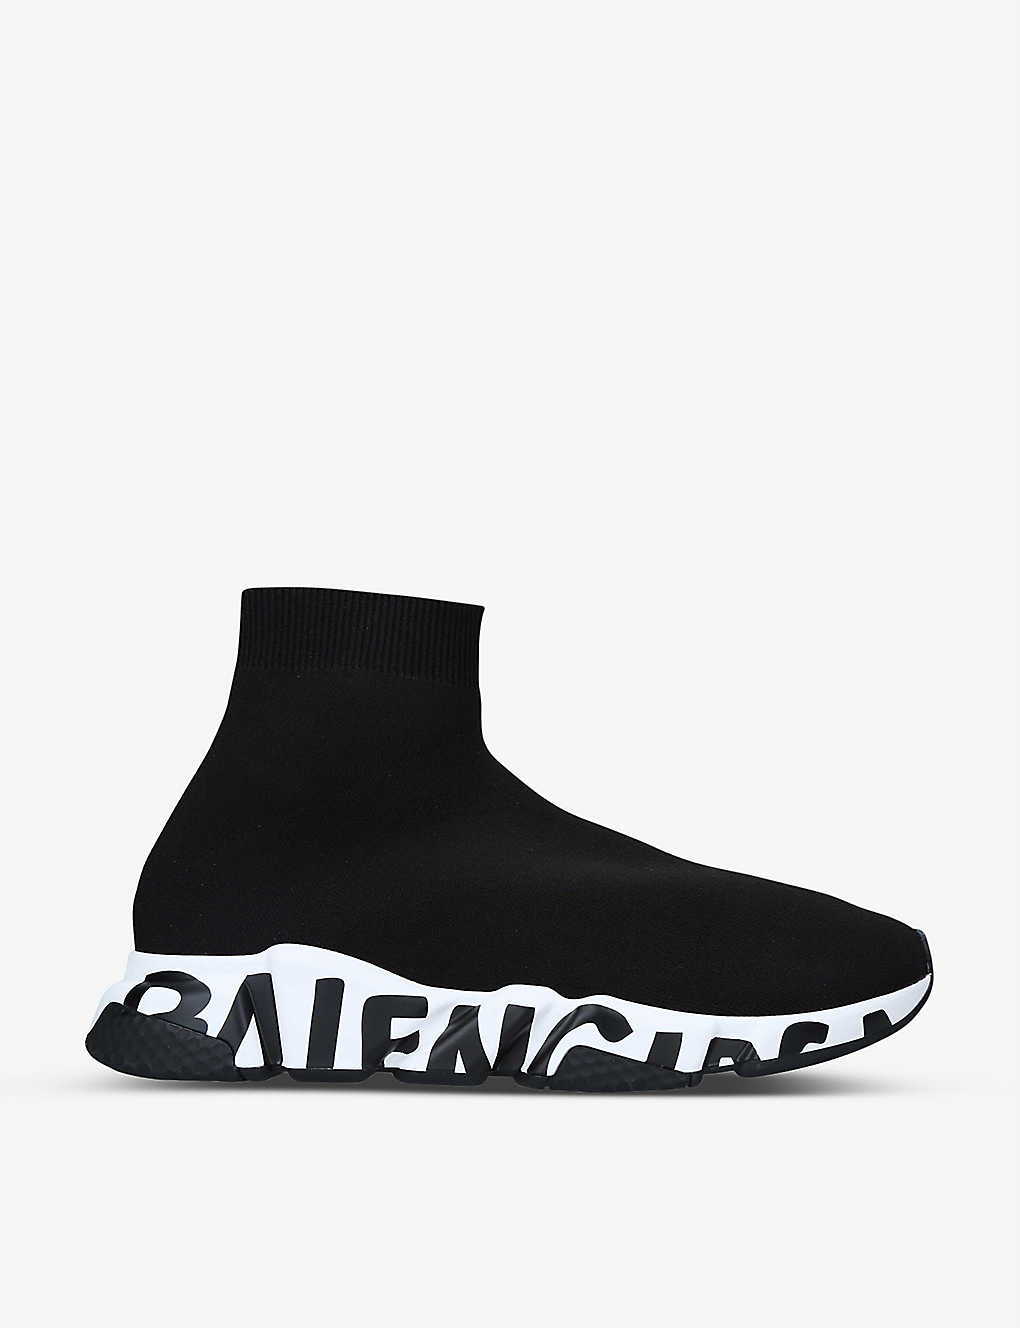 BALENCIAGA: Speed Graffiti Sole knitted trainers